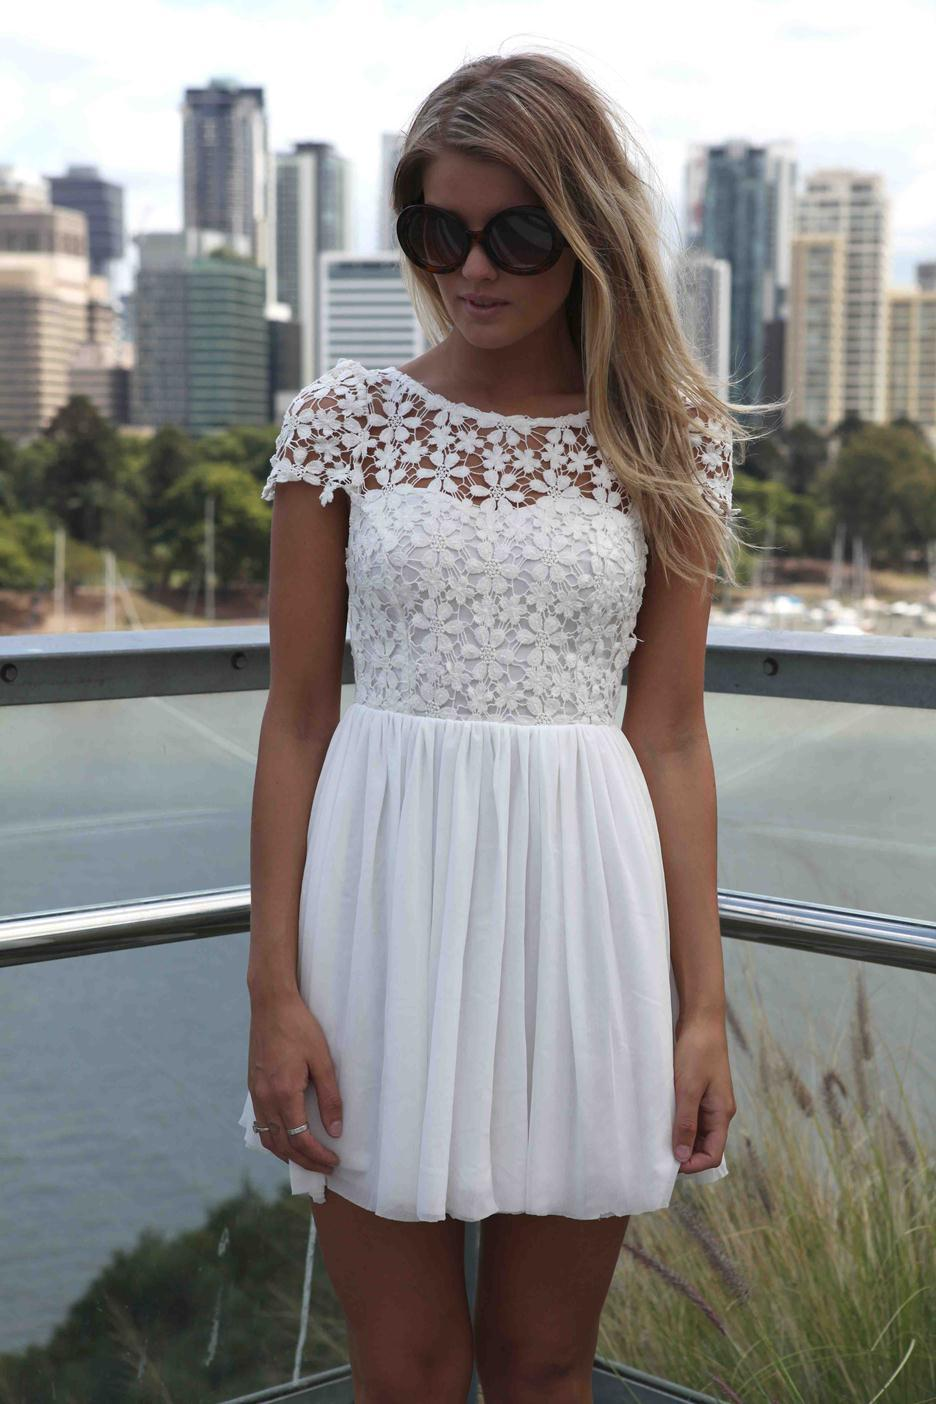 Summer 2014 New Designer Saias Fashion Femininas Casual White Short Sleeve Club Floral Party Crochet Pleated Lace Dress Women-in Dresses from Apparel & Accessories on Aliexpress.com